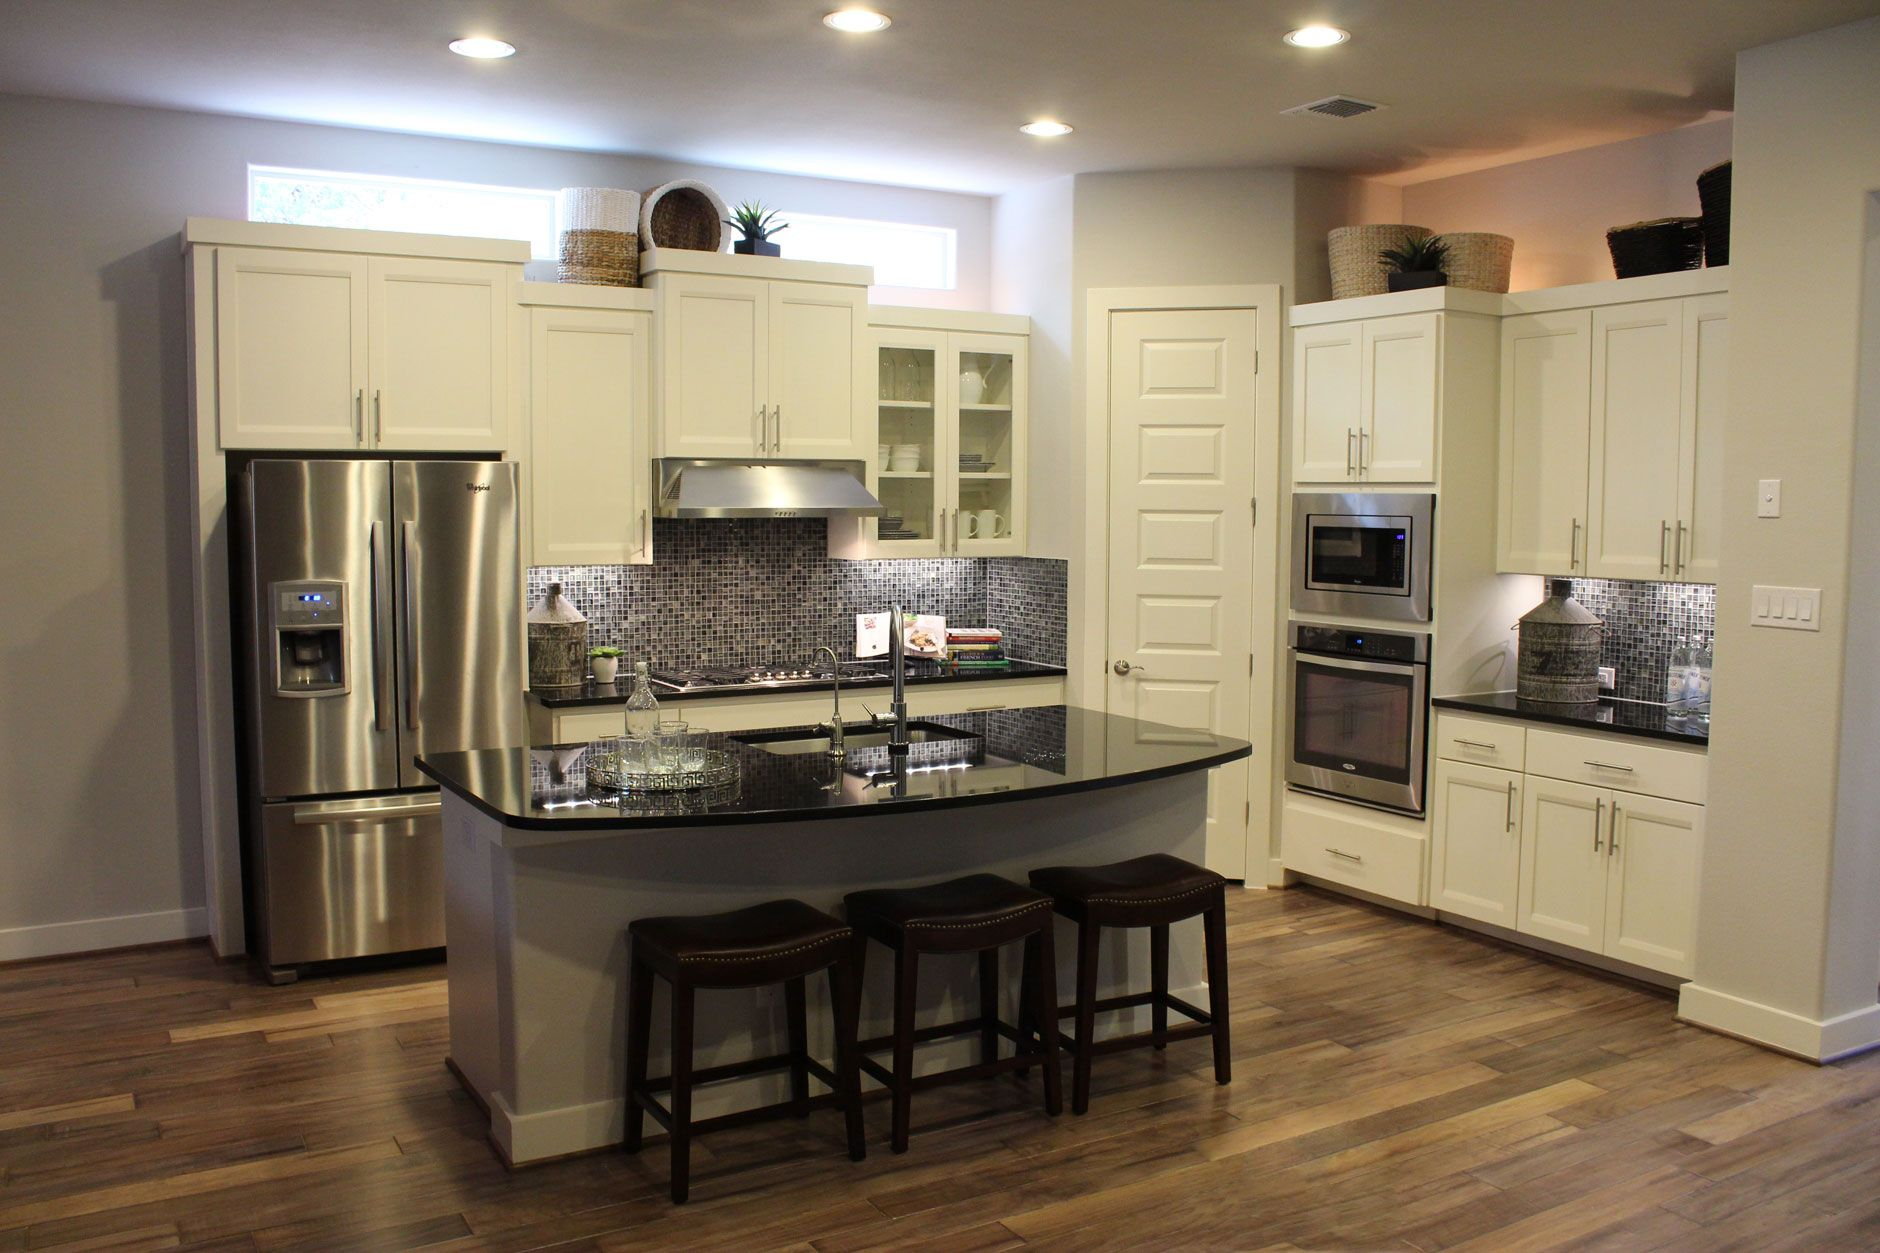 White Kitchen Cabinet With Transitional Combination Frame Cabinet Door Kitchen Cabinets And Flooring Kitchen Cabinets And Countertops Cabinets And Countertops